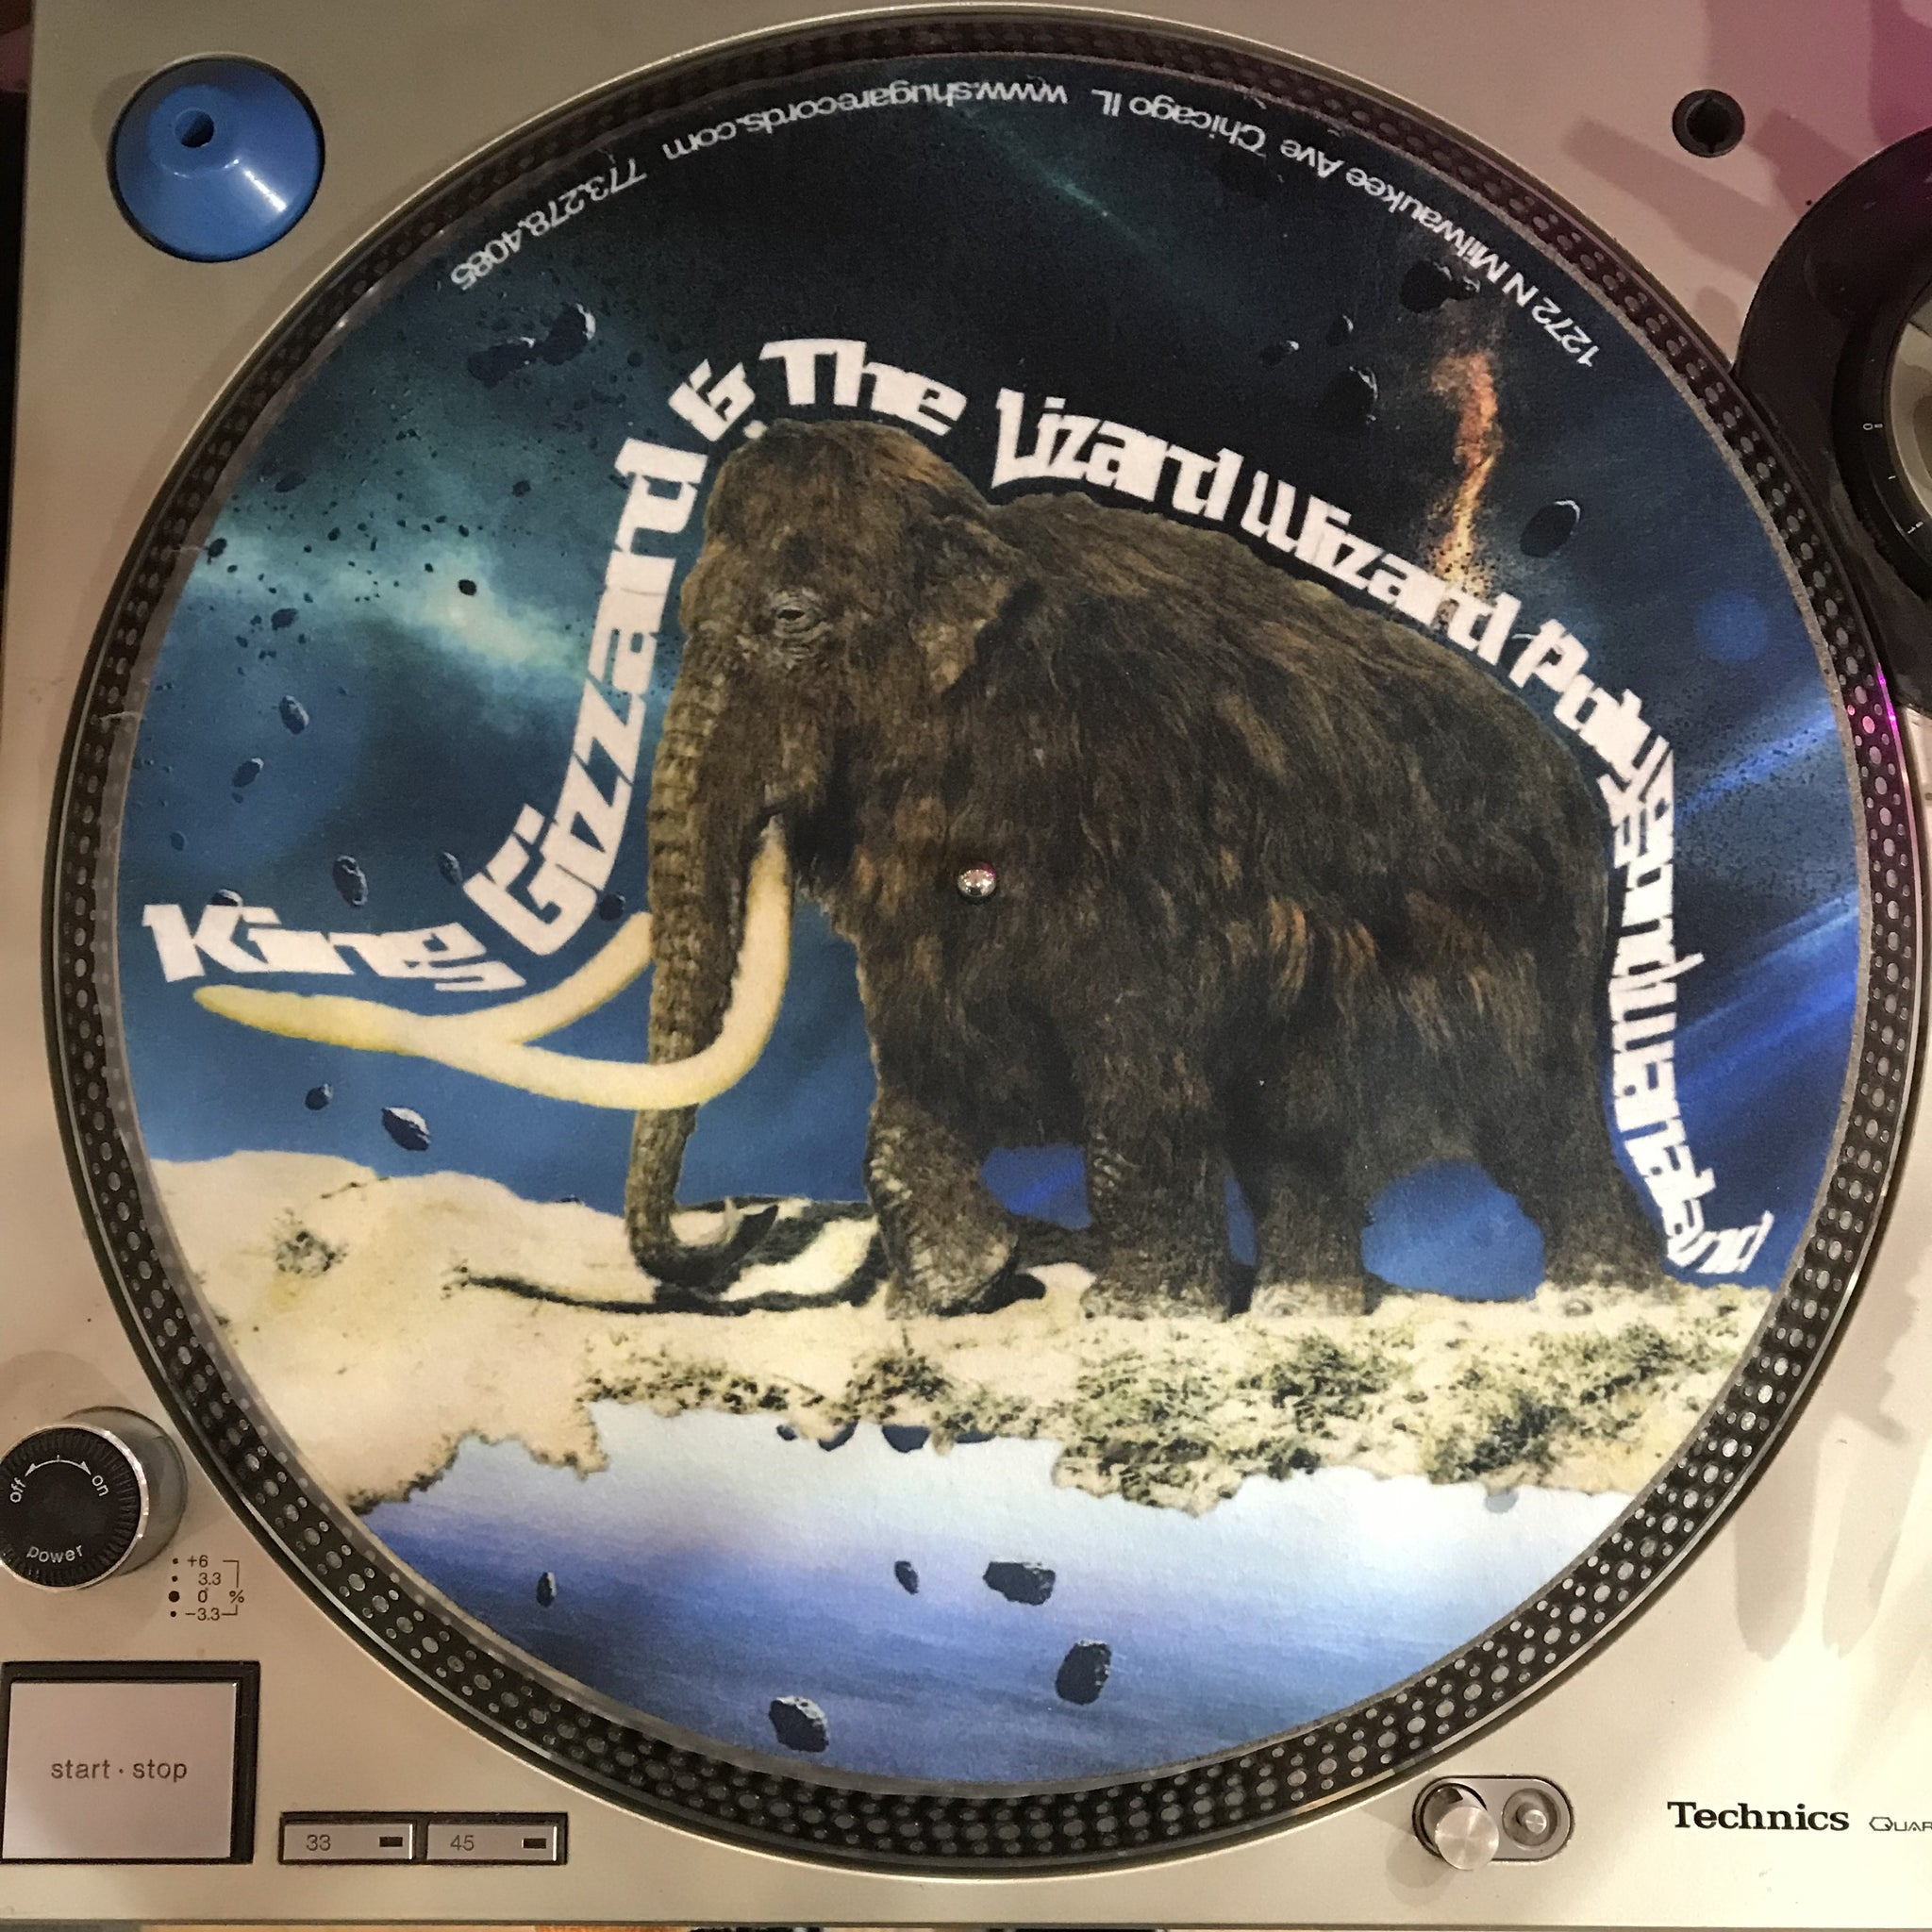 Shuga Records 2018 Limited Edition Vinyl Record Slipmat King Gizzard And The Lizard Wizard Polygondwanaland Space Mammoth 2